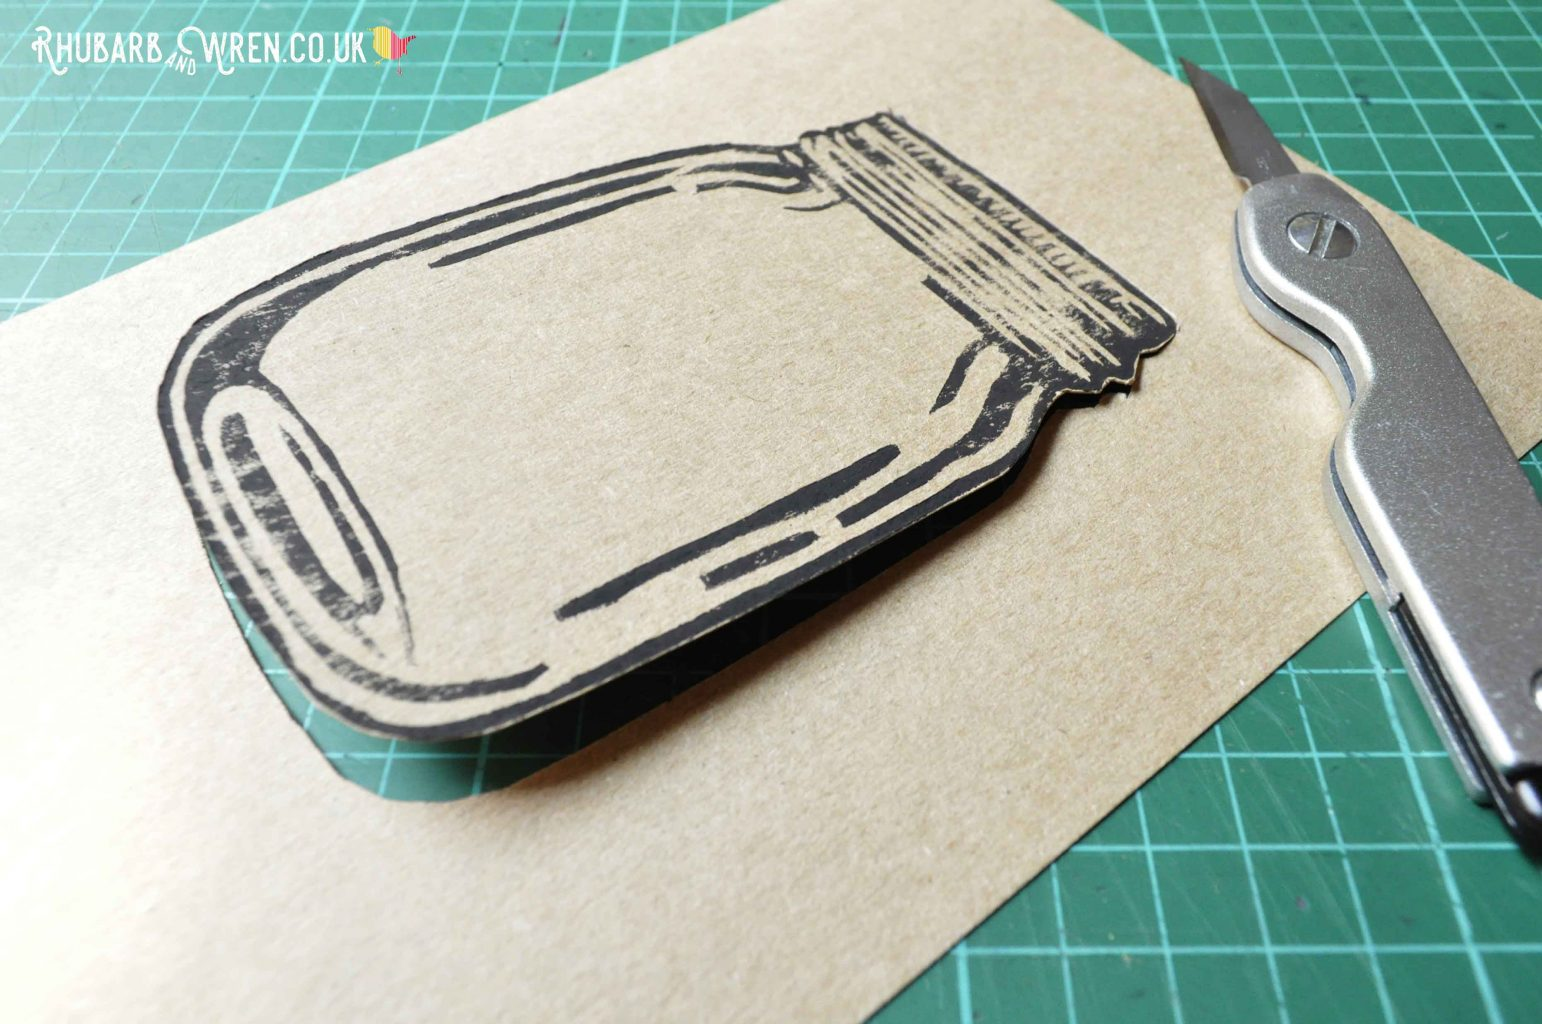 lino printed image of mason jar partially cut out.